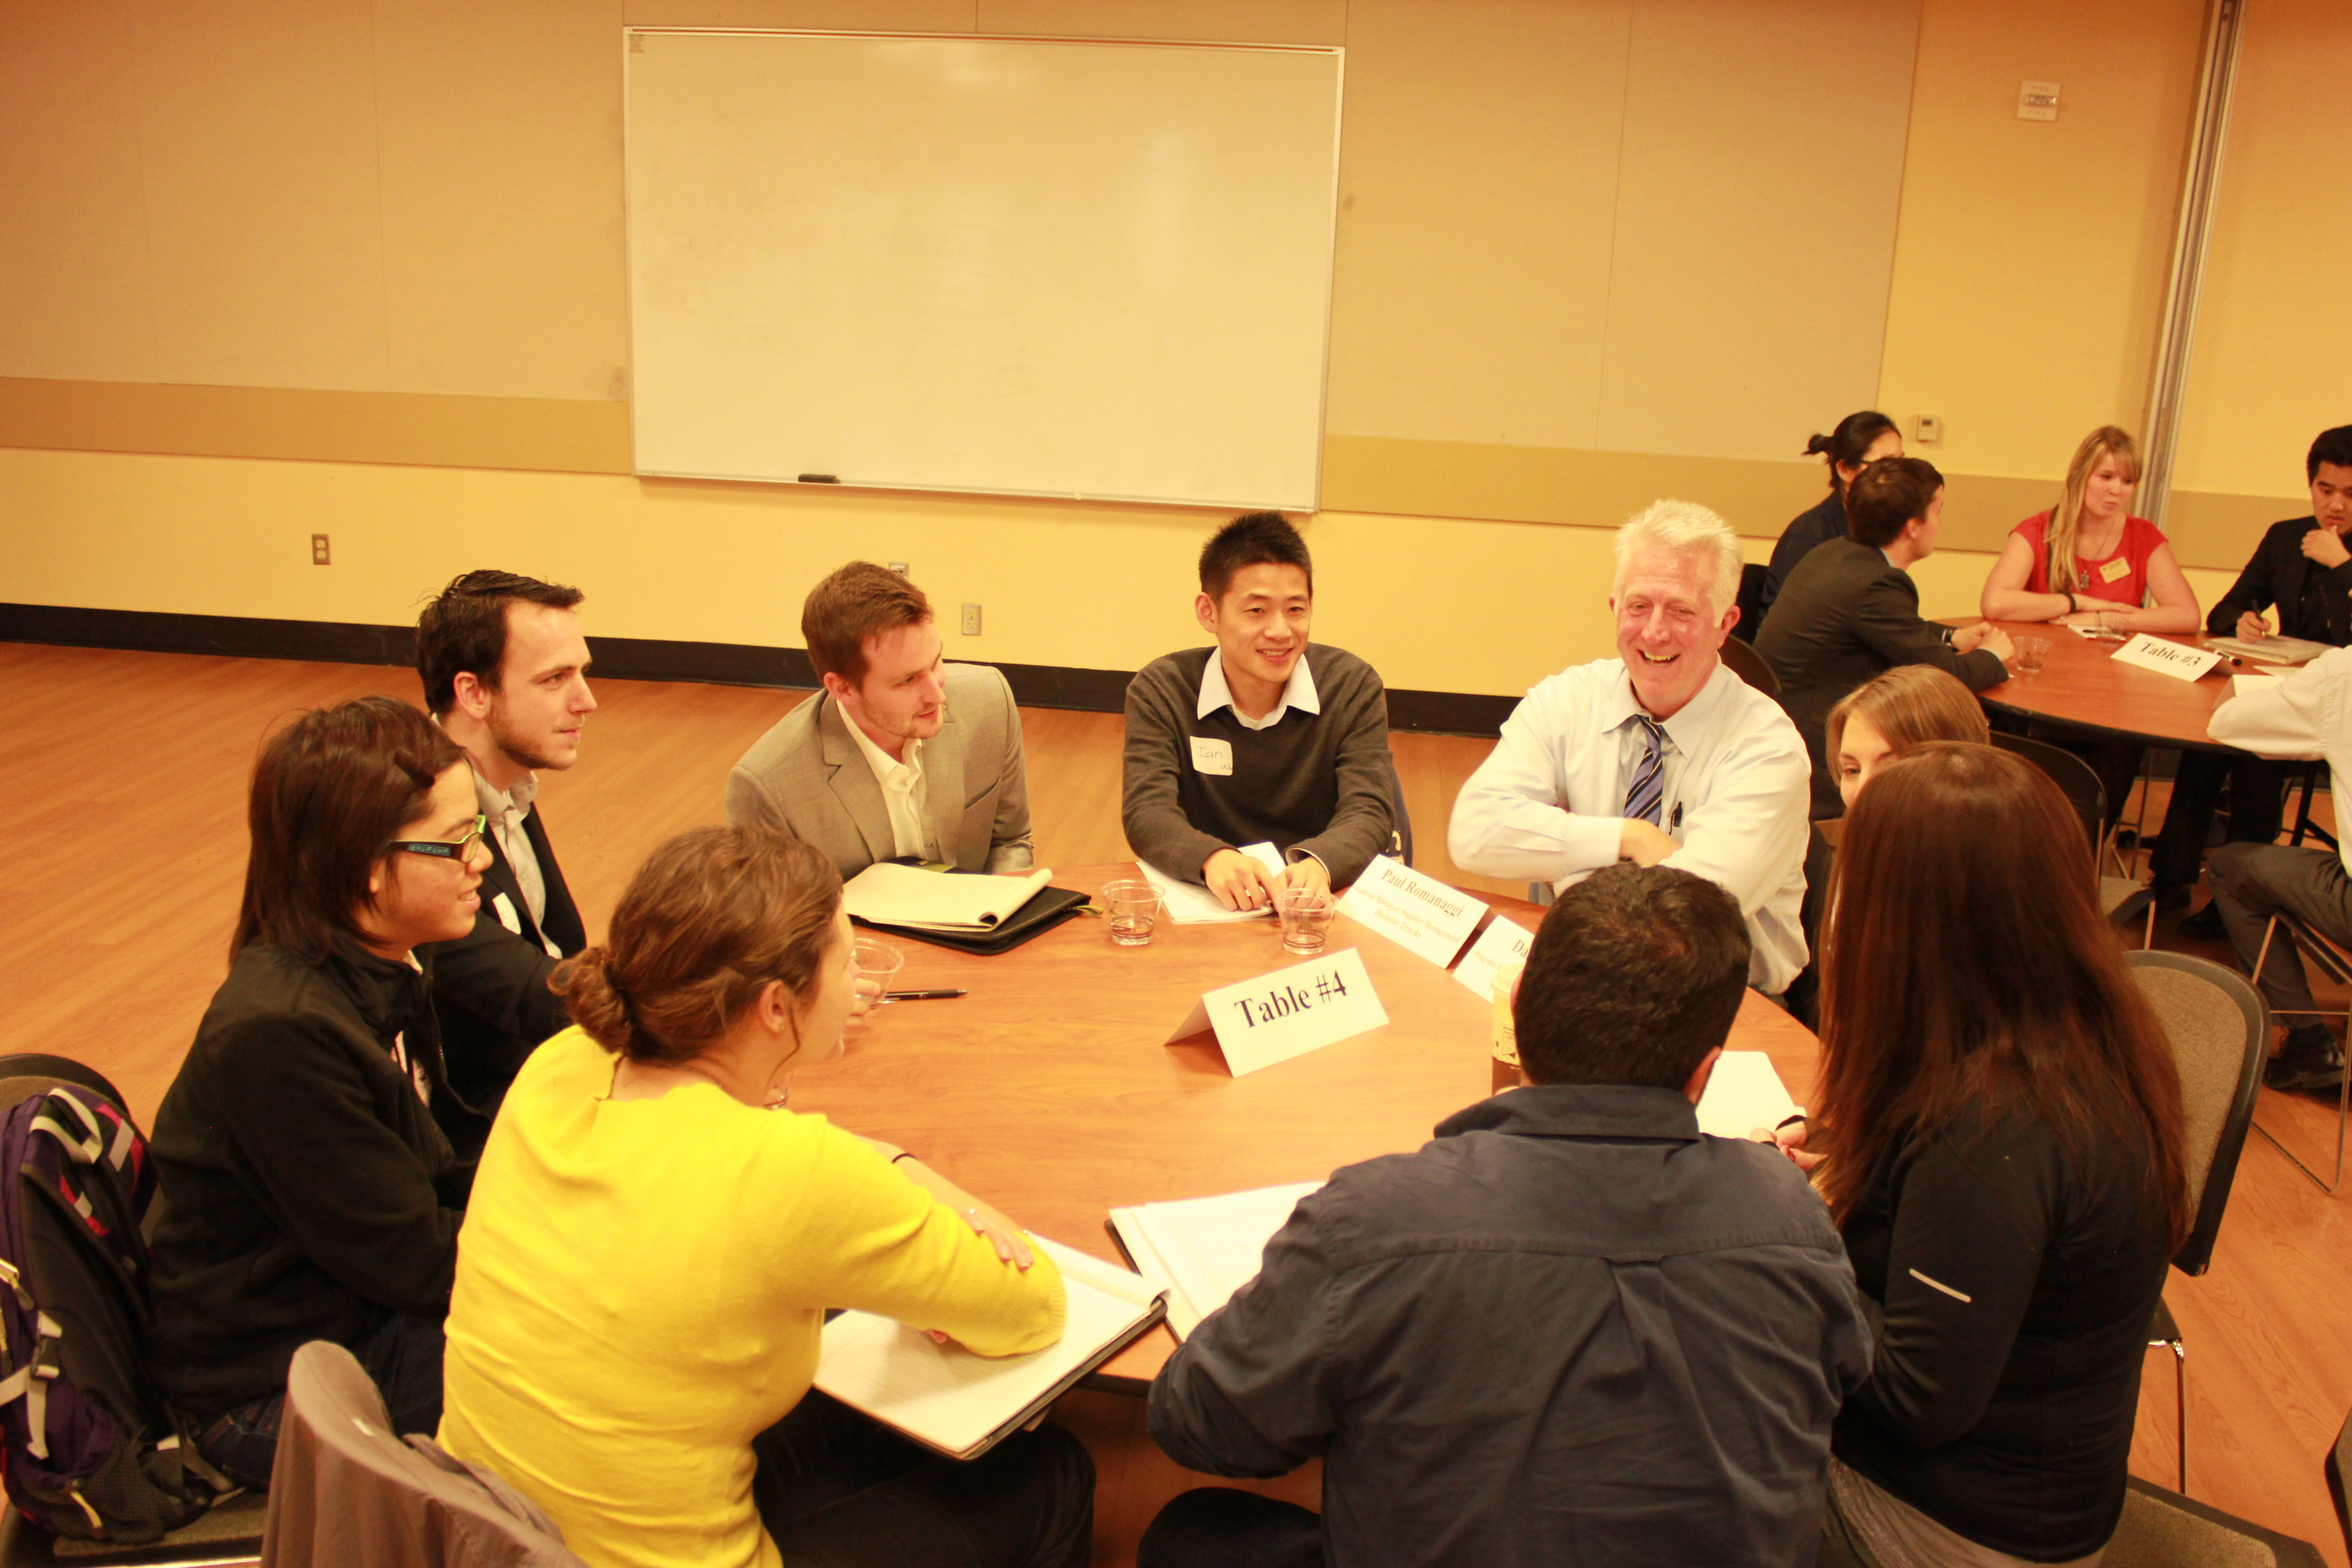 international business careers portland state mim other career events that are held throughout the year include workshops on resume and cover letter writing interviewing skills and workshops specifically